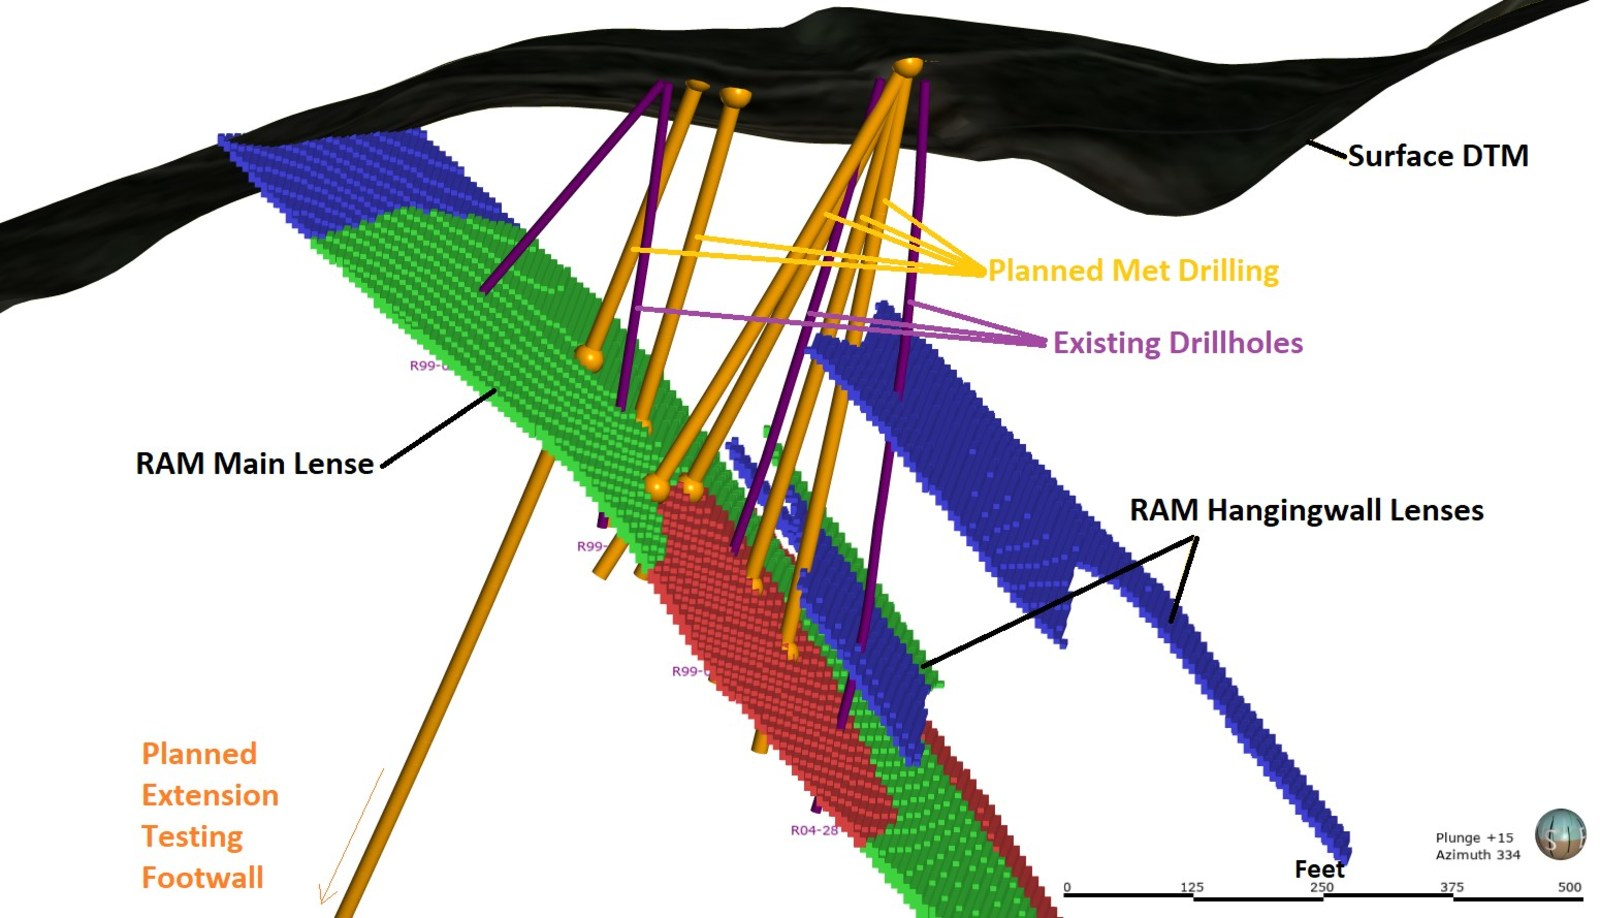 Figure 2 - Metallurgical Testwork Drilling Programme - The diagram below shows the pierce point locations of the metallurgical testwork drilling programme, looking from below surface northwards onto the main Ram lense.